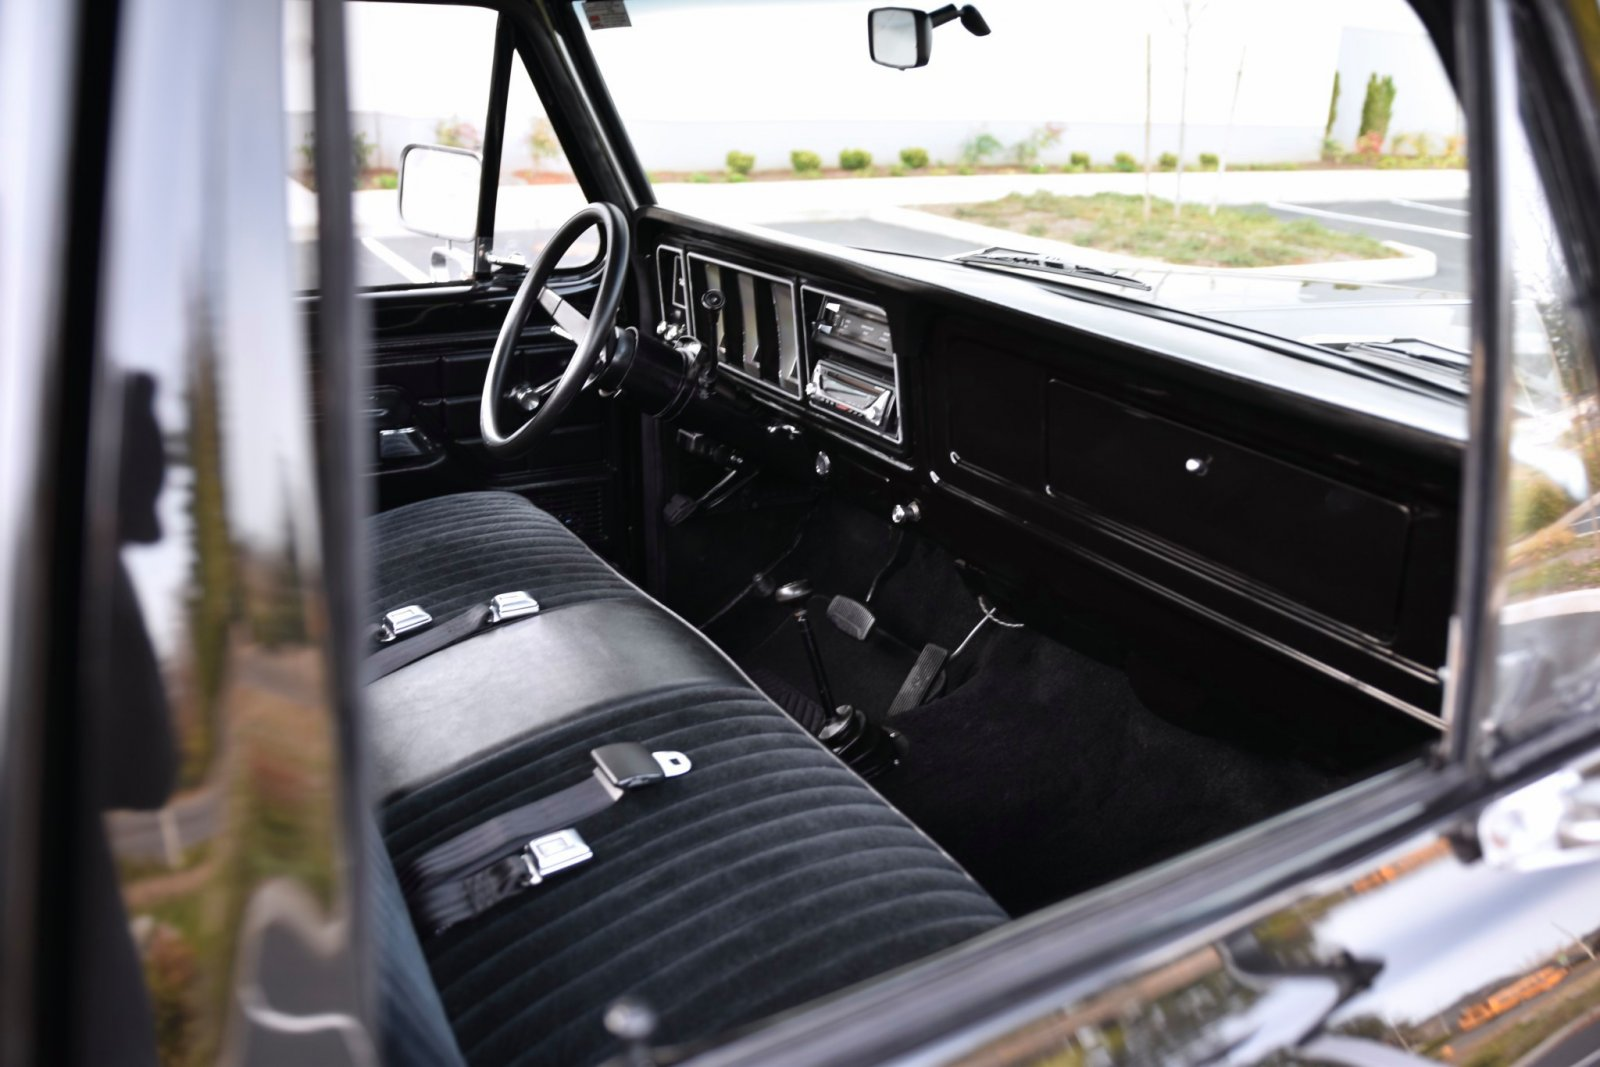 1979_ford_f150_custom_4x4_1573796620ff9f98764da92.jpeg